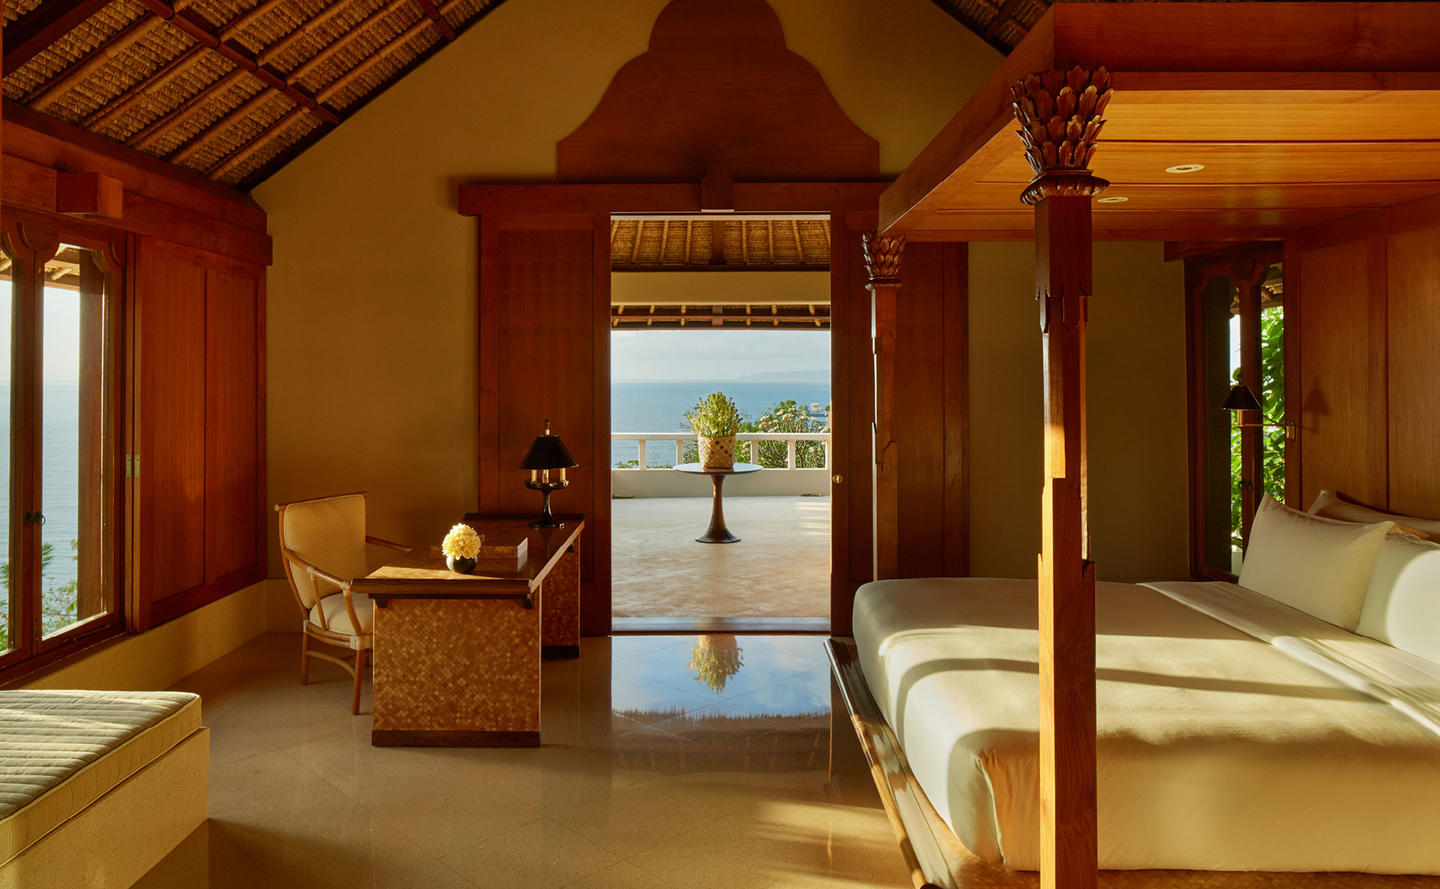 Bedroom, Ocean Suite - Amankila, Bali, Indonesia